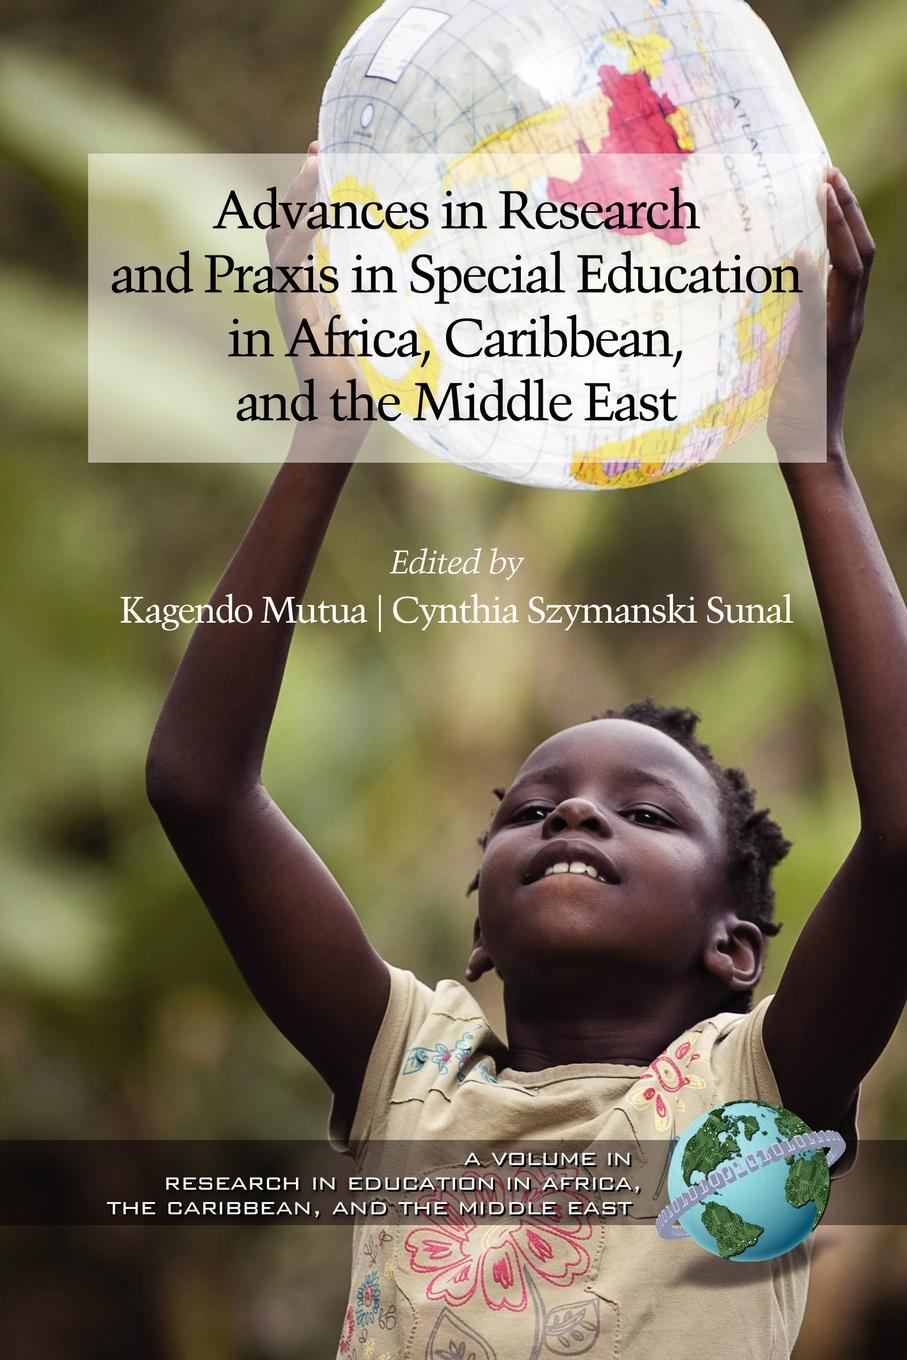 Advances in Research and Praxis in Special Education in Africa, Caribbean, and the Middle East david karanja and daniel komo gakunga teachers efficacy in the implementation of inclusive education